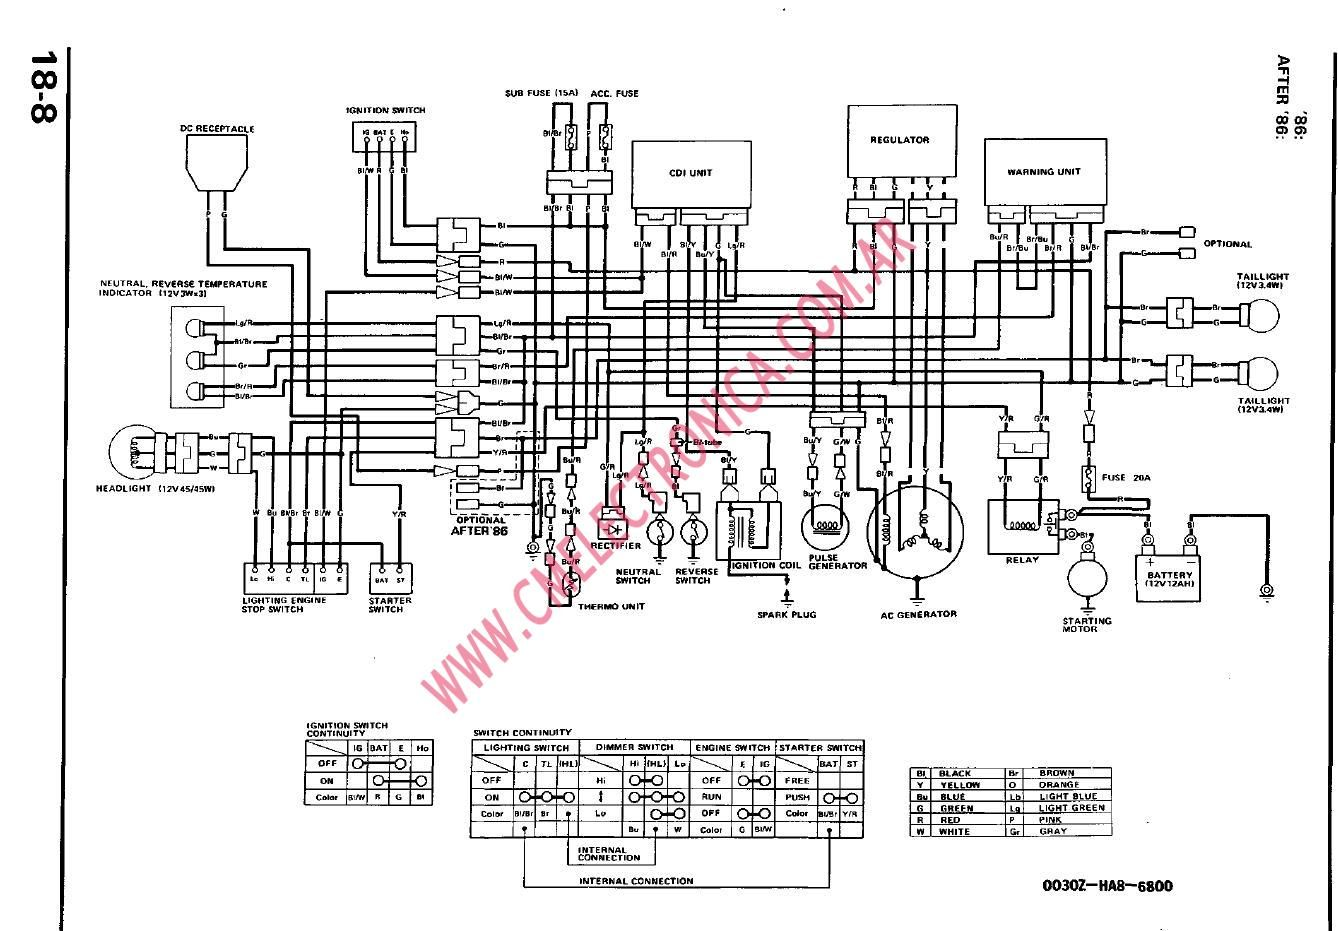 1998 trx 250 fourtrax recon wiring | 1993 Honda 300Ex Wiring Diagram  furthermore Honda Big Red